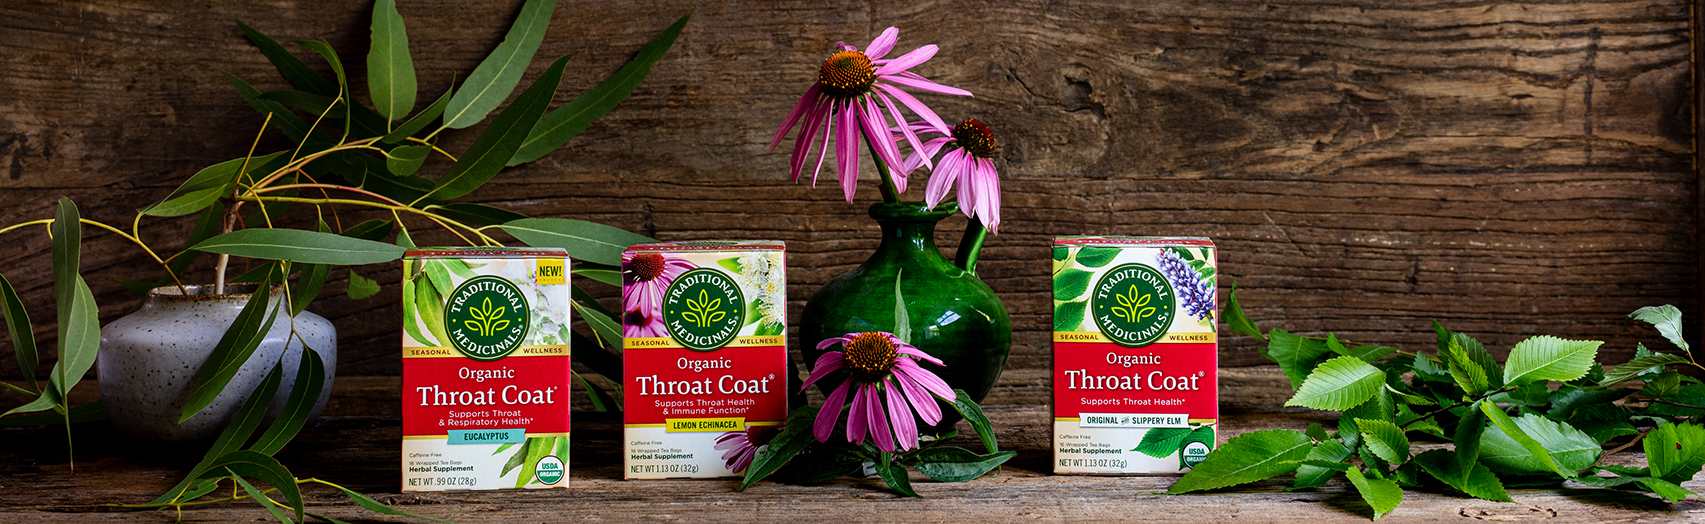 Lineup of our Throat Coat teas